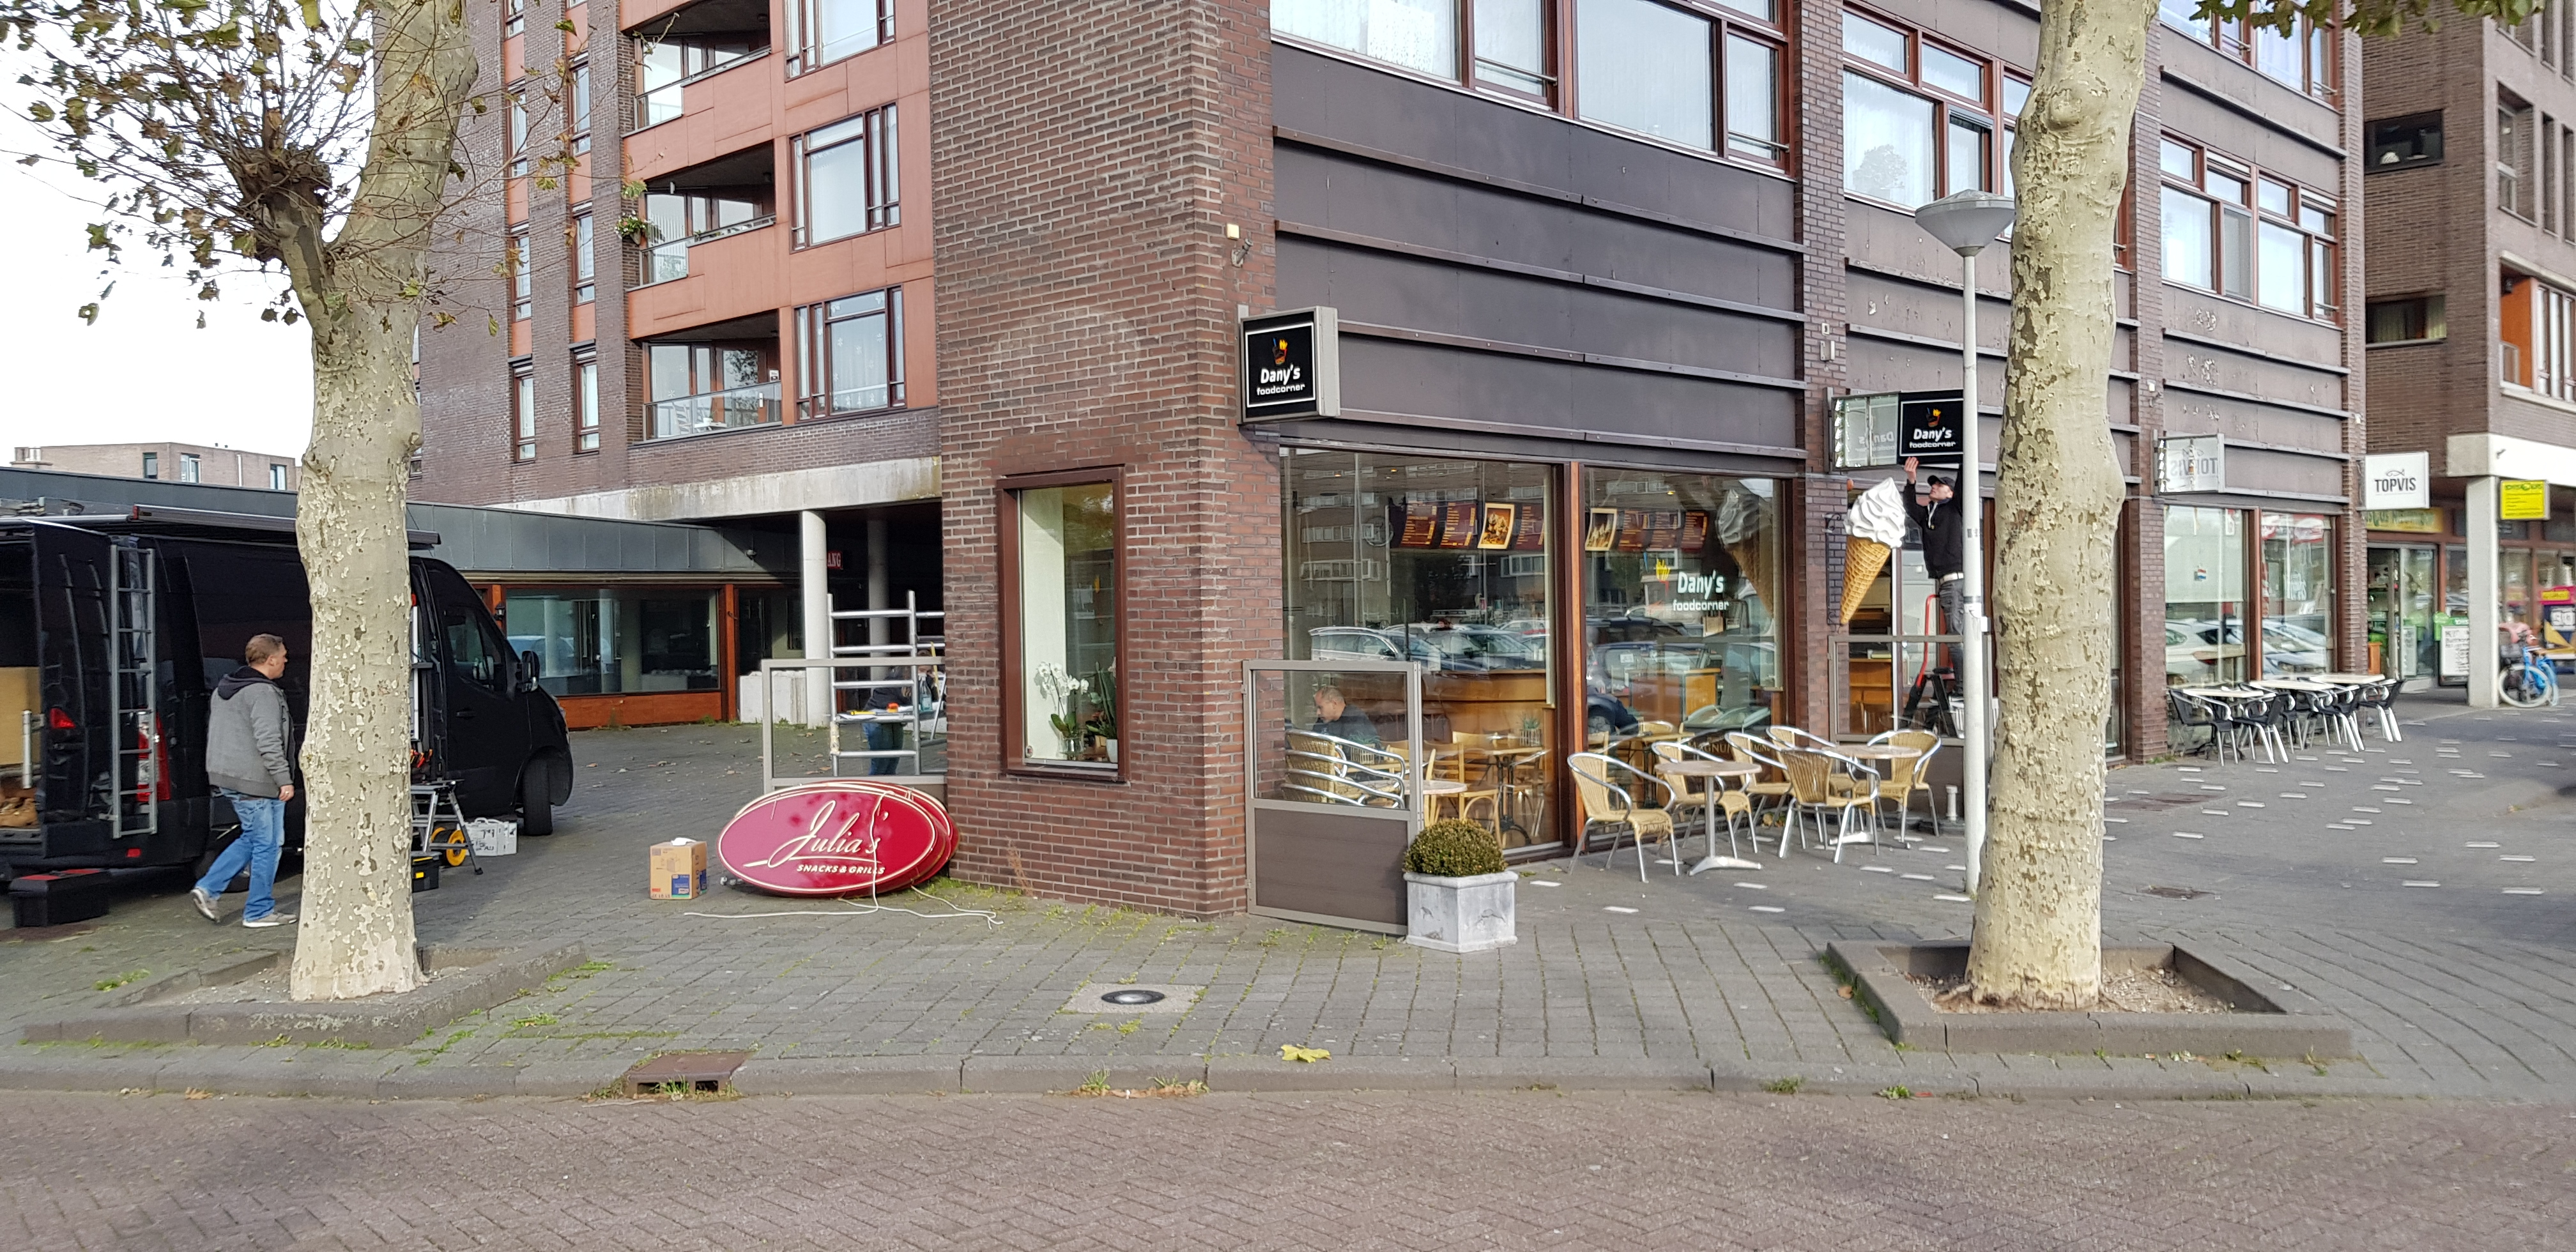 Julia's is gewijzigd in Dany's Foodcorner